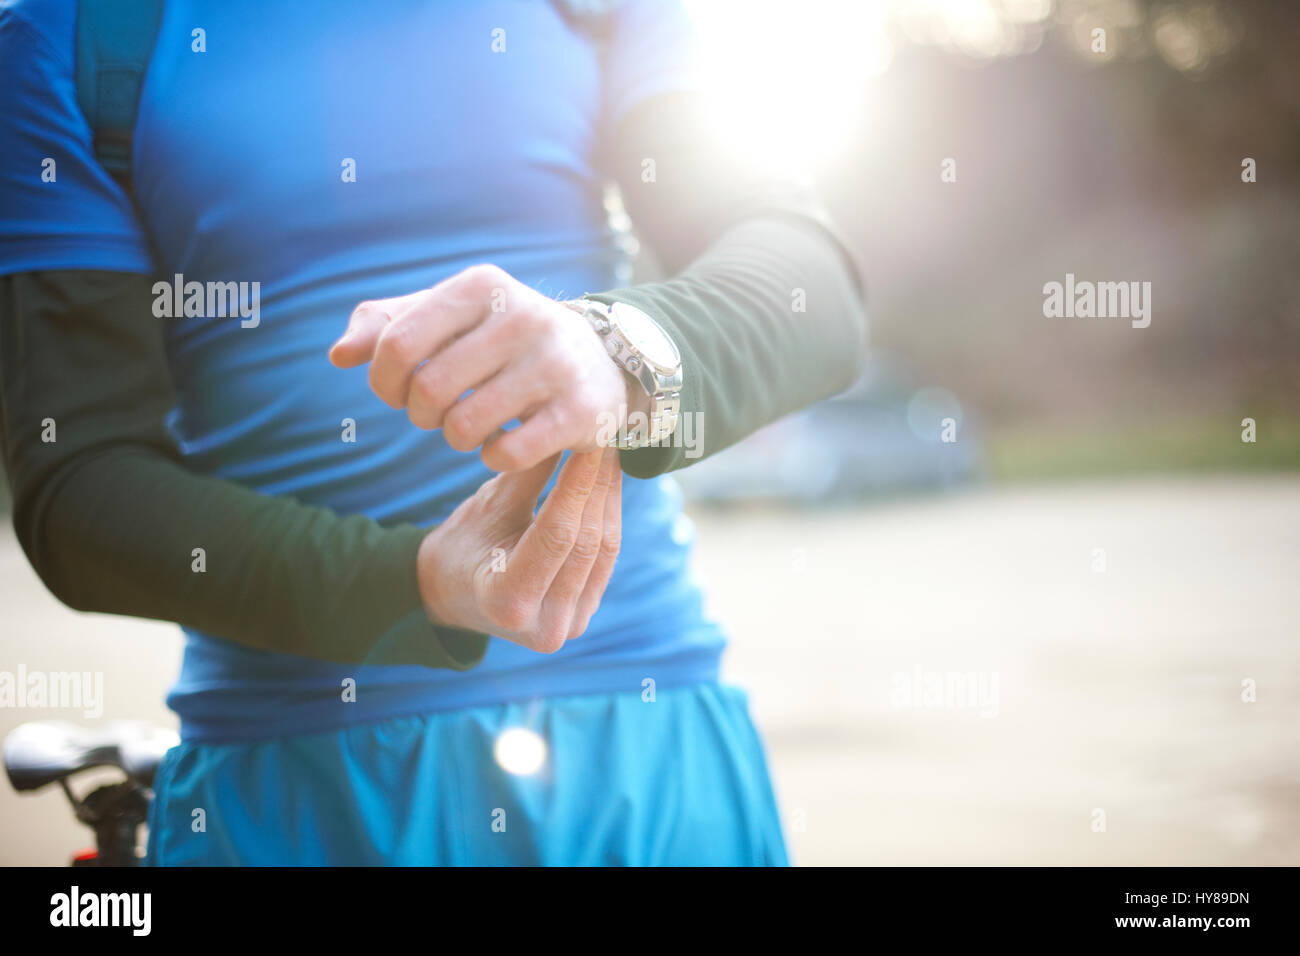 A man fastens his watch before exercise - Stock Image